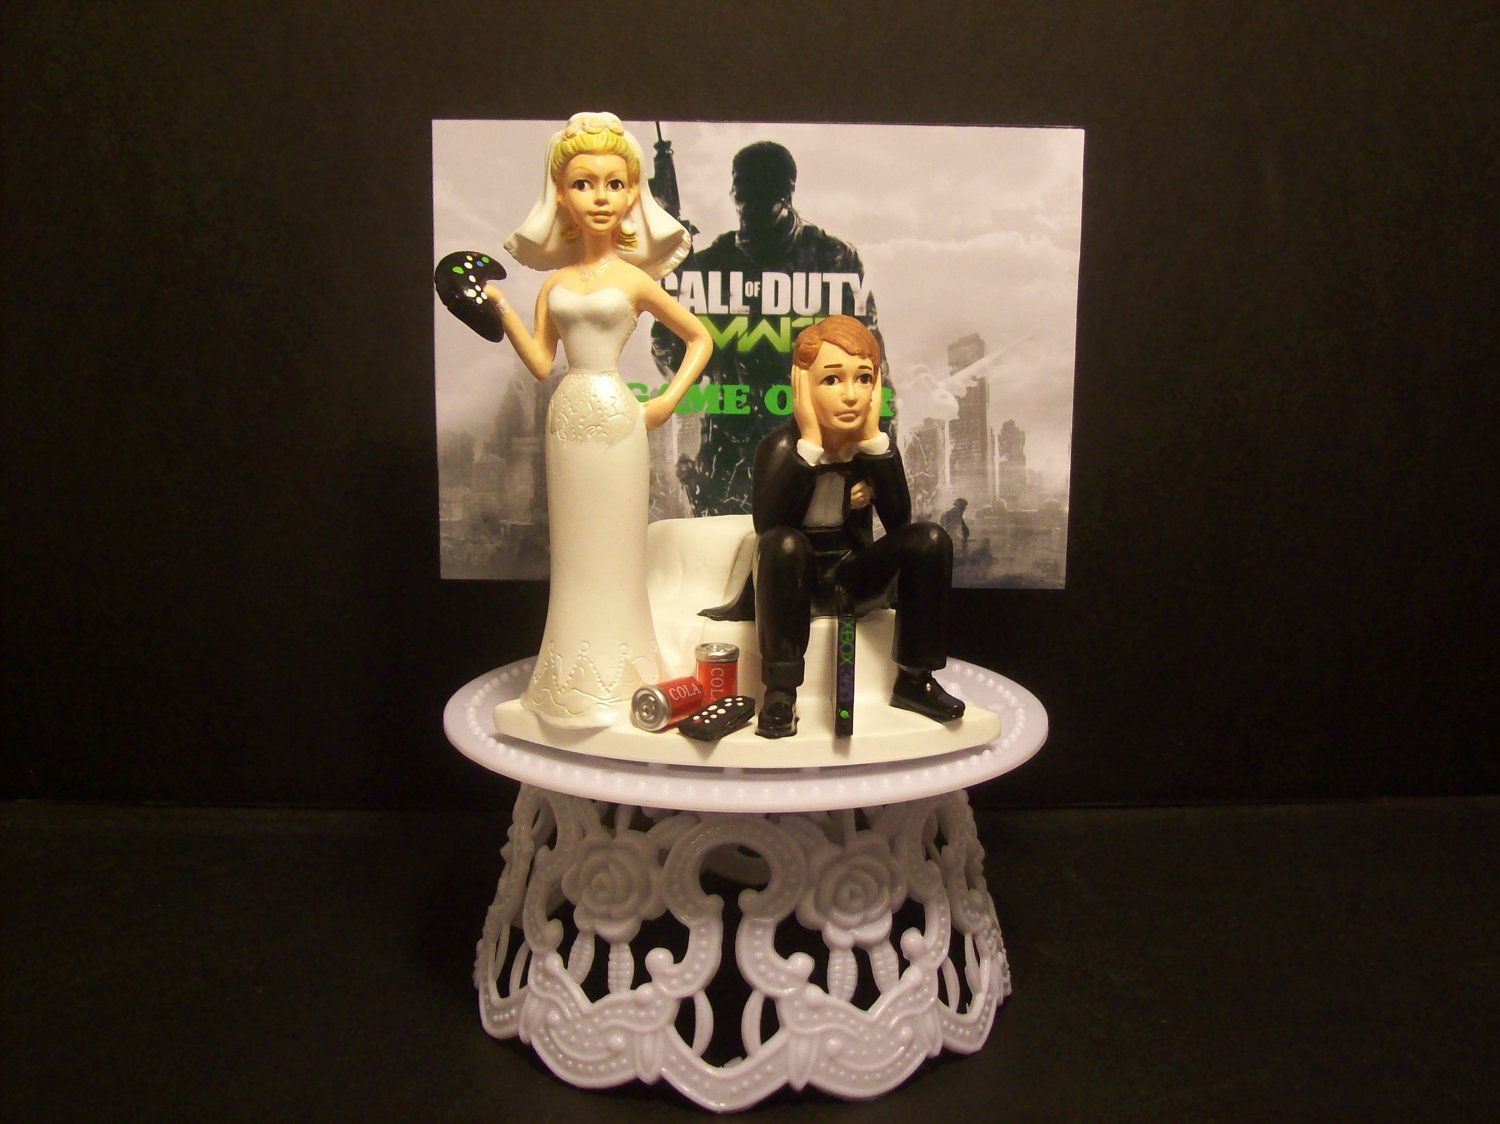 Got The Controller Video Call Of Duty Modern War 3 Mw3 Bride And Groom Funny Wedding Cake Topper